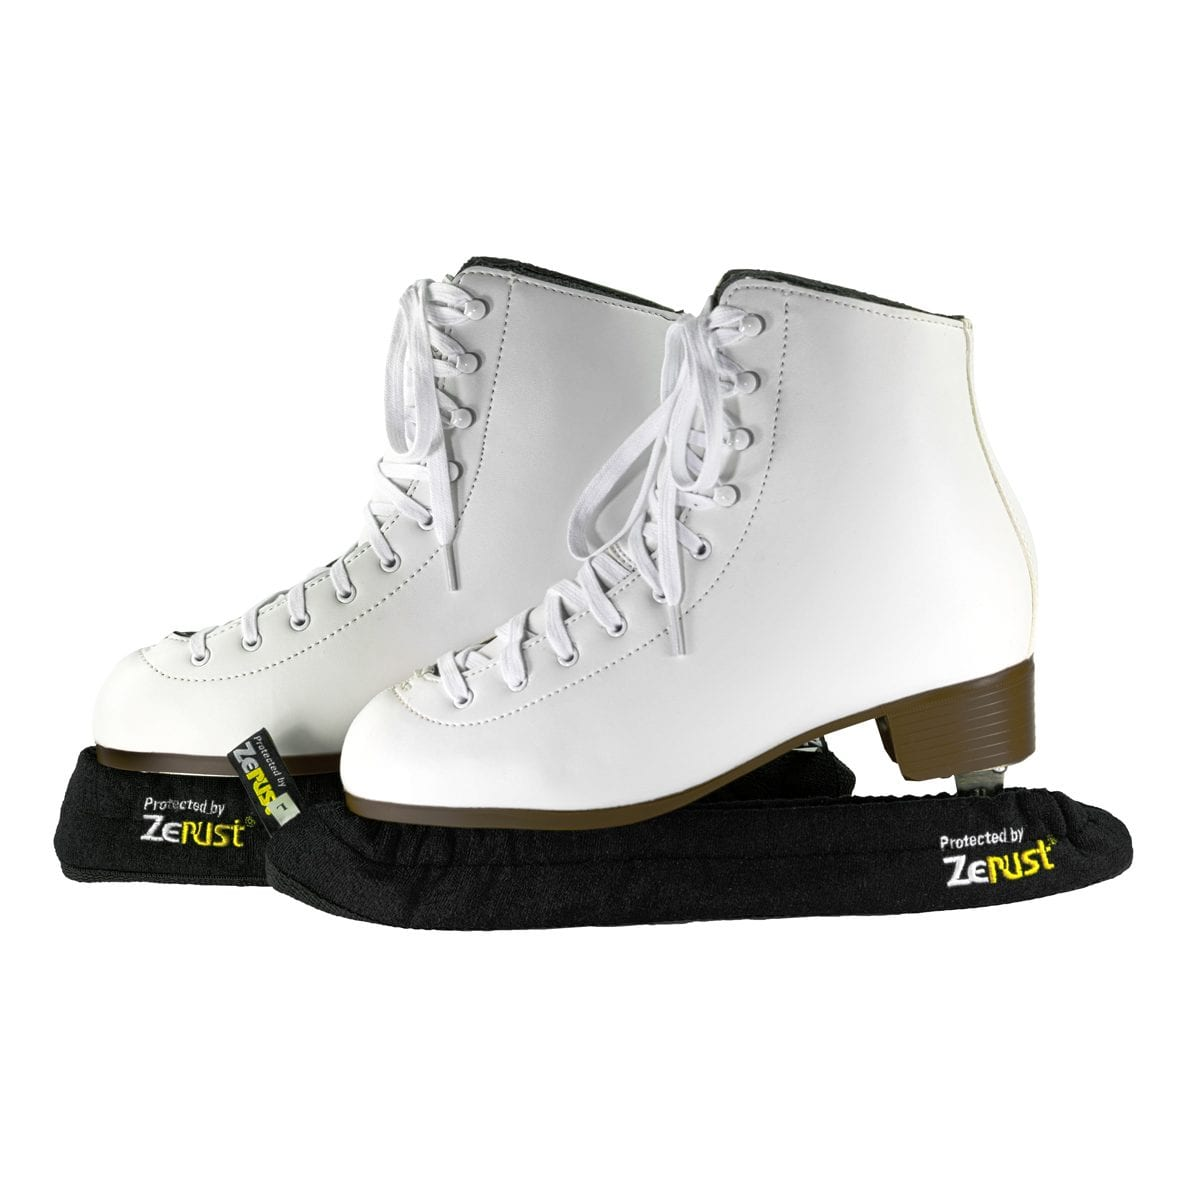 A pair of skates using ice skate blade covers.